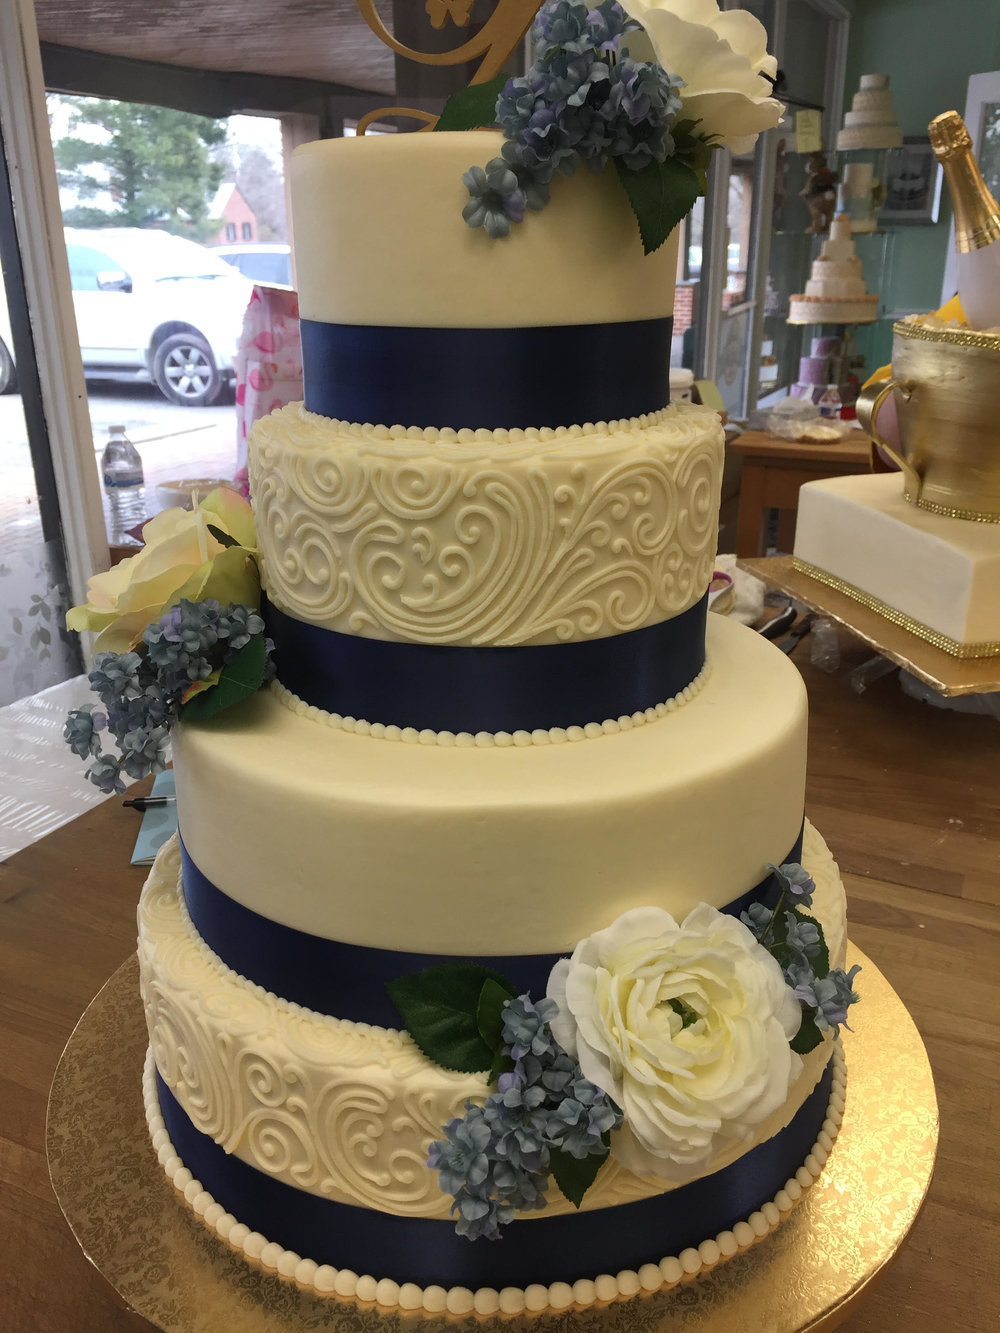 Four Tier Blue Ribbon and Flowers Wedding Cake